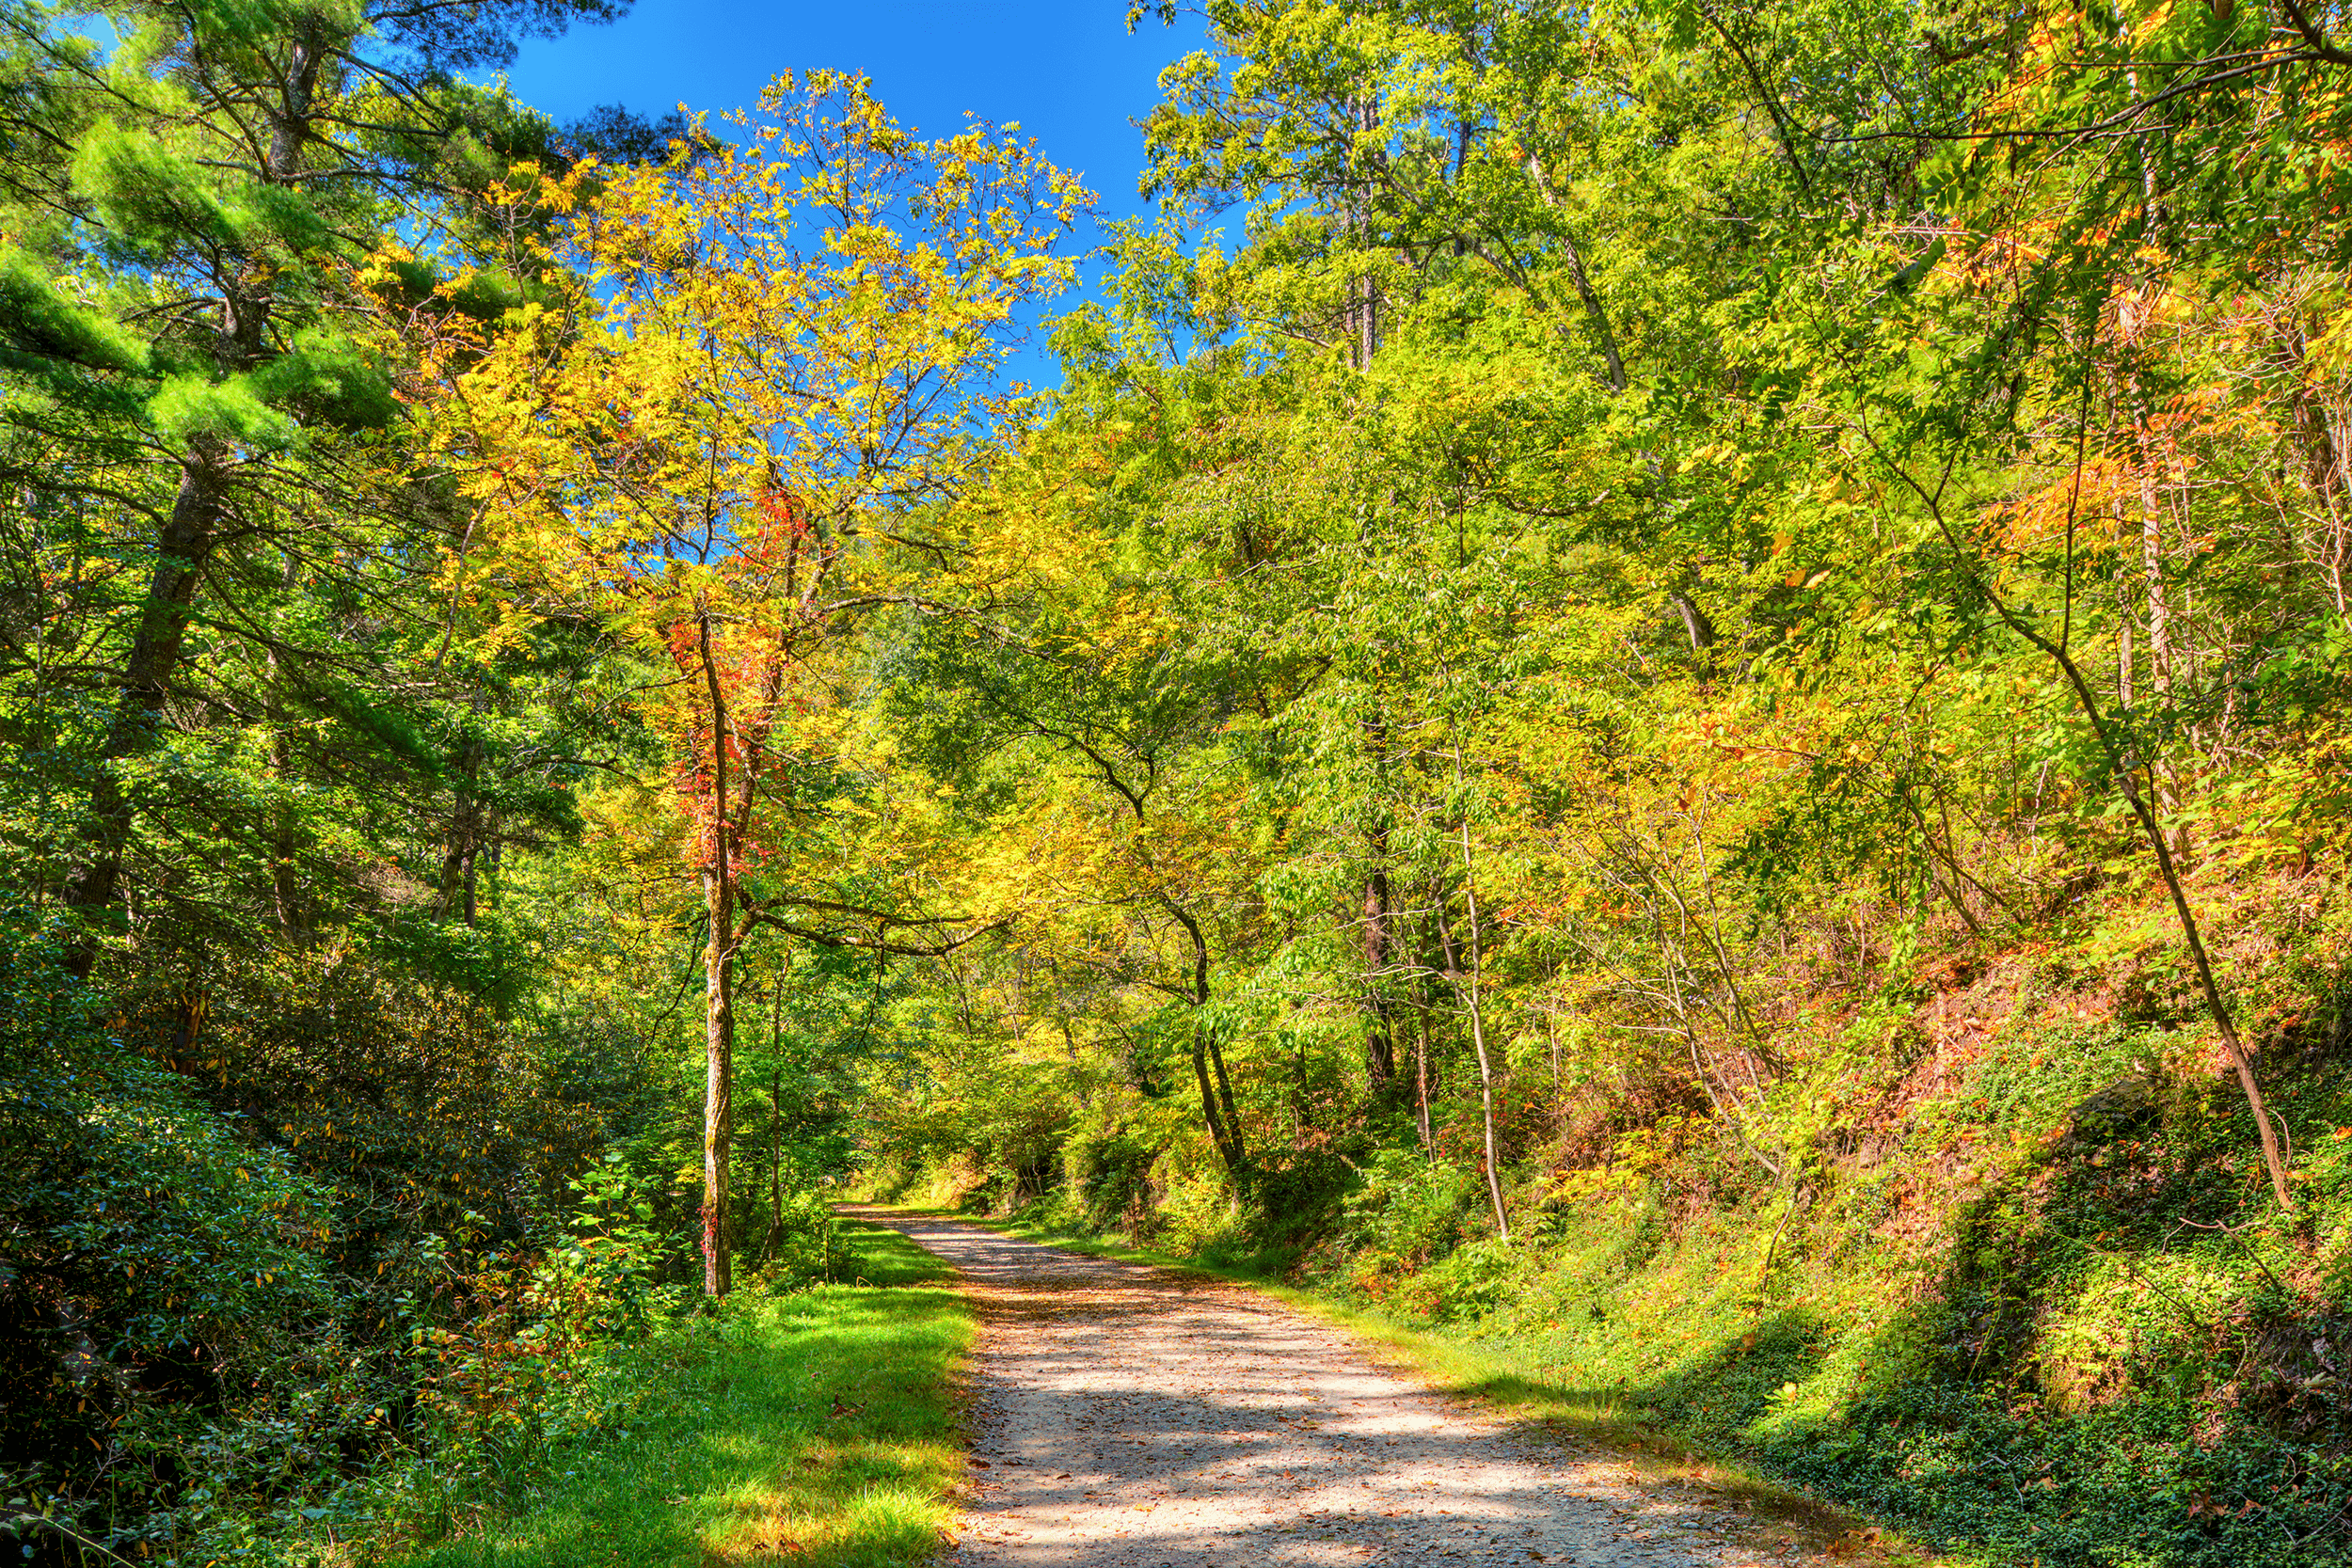 In addition to the various garden areas, the Arboretum offers a total of 11 trails for hiking and biking with over 10 miles (16 km) of fun and relaxation through western North Carolina woodlands.